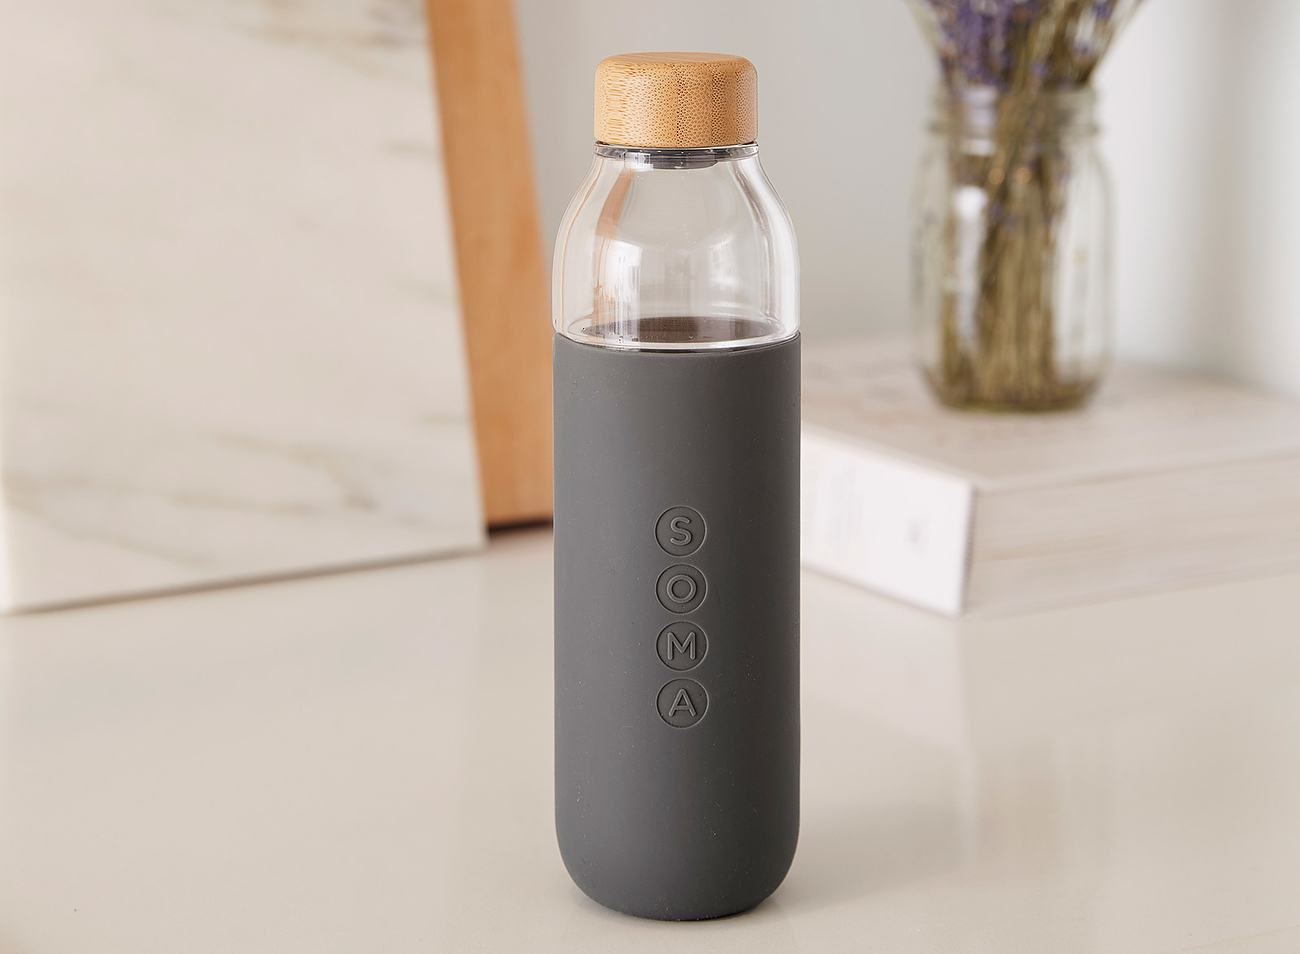 soma glass water bottle review the gadget flow. Black Bedroom Furniture Sets. Home Design Ideas